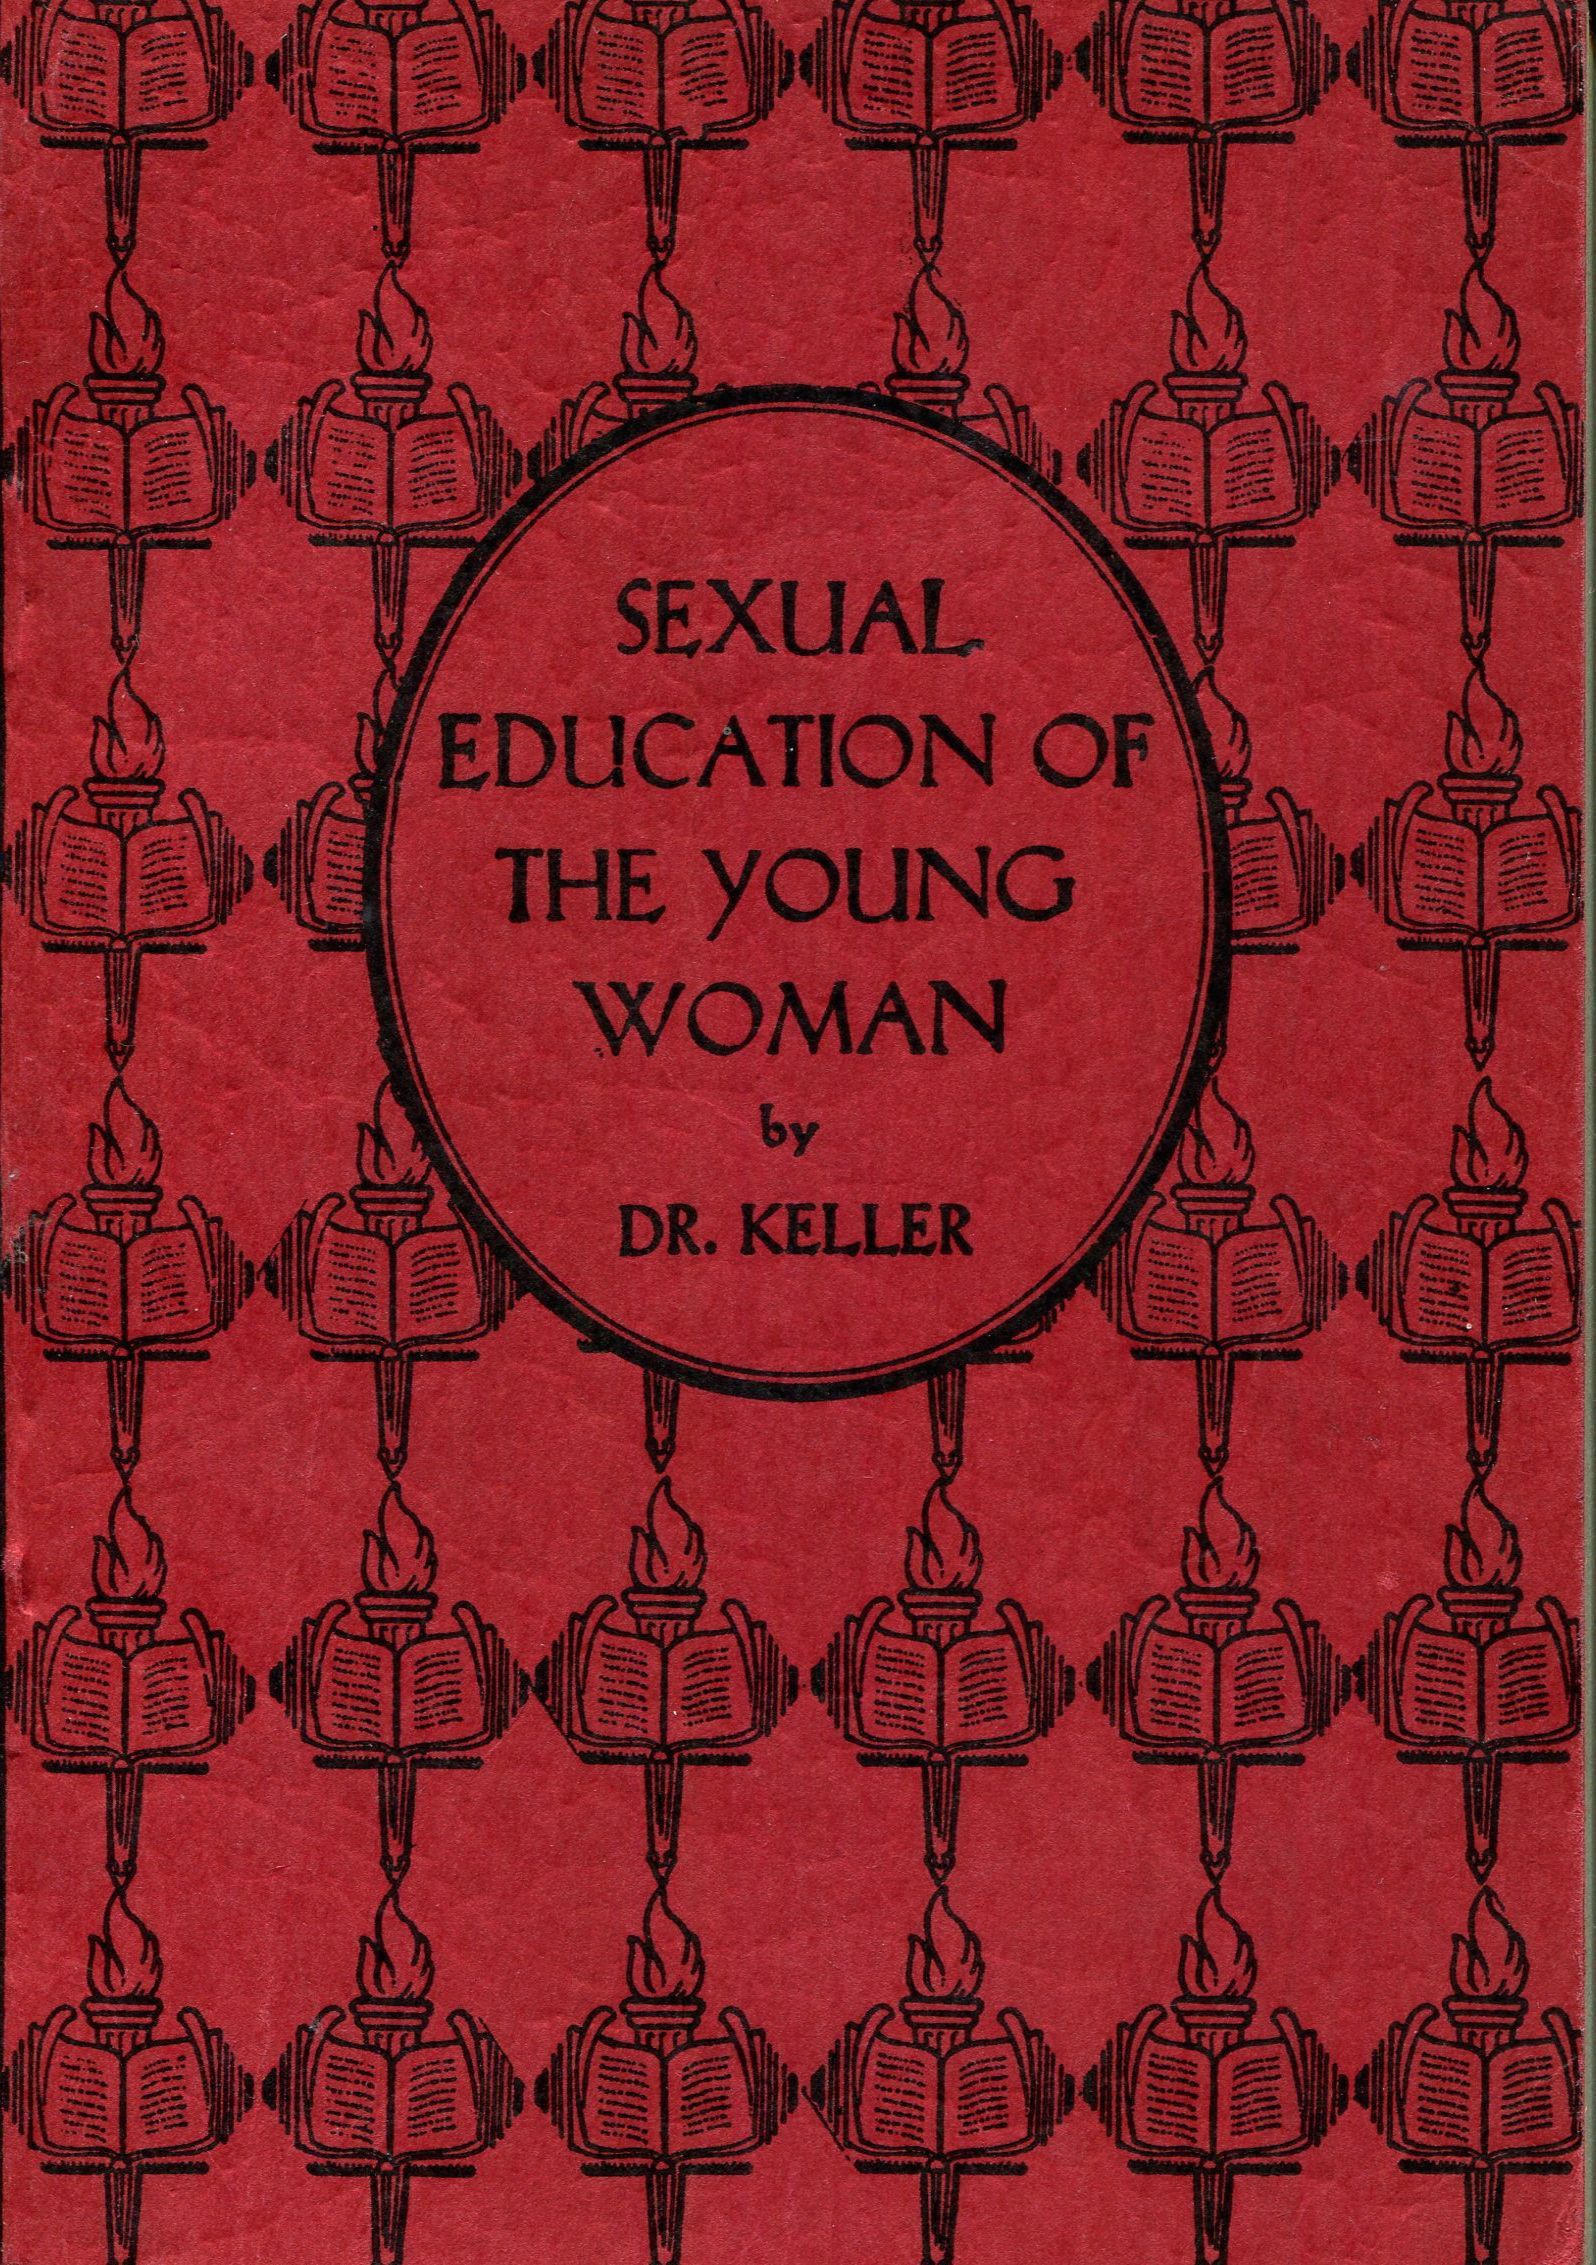 Image for Sexual Education of the Young Woman (The Sexual Education Series)